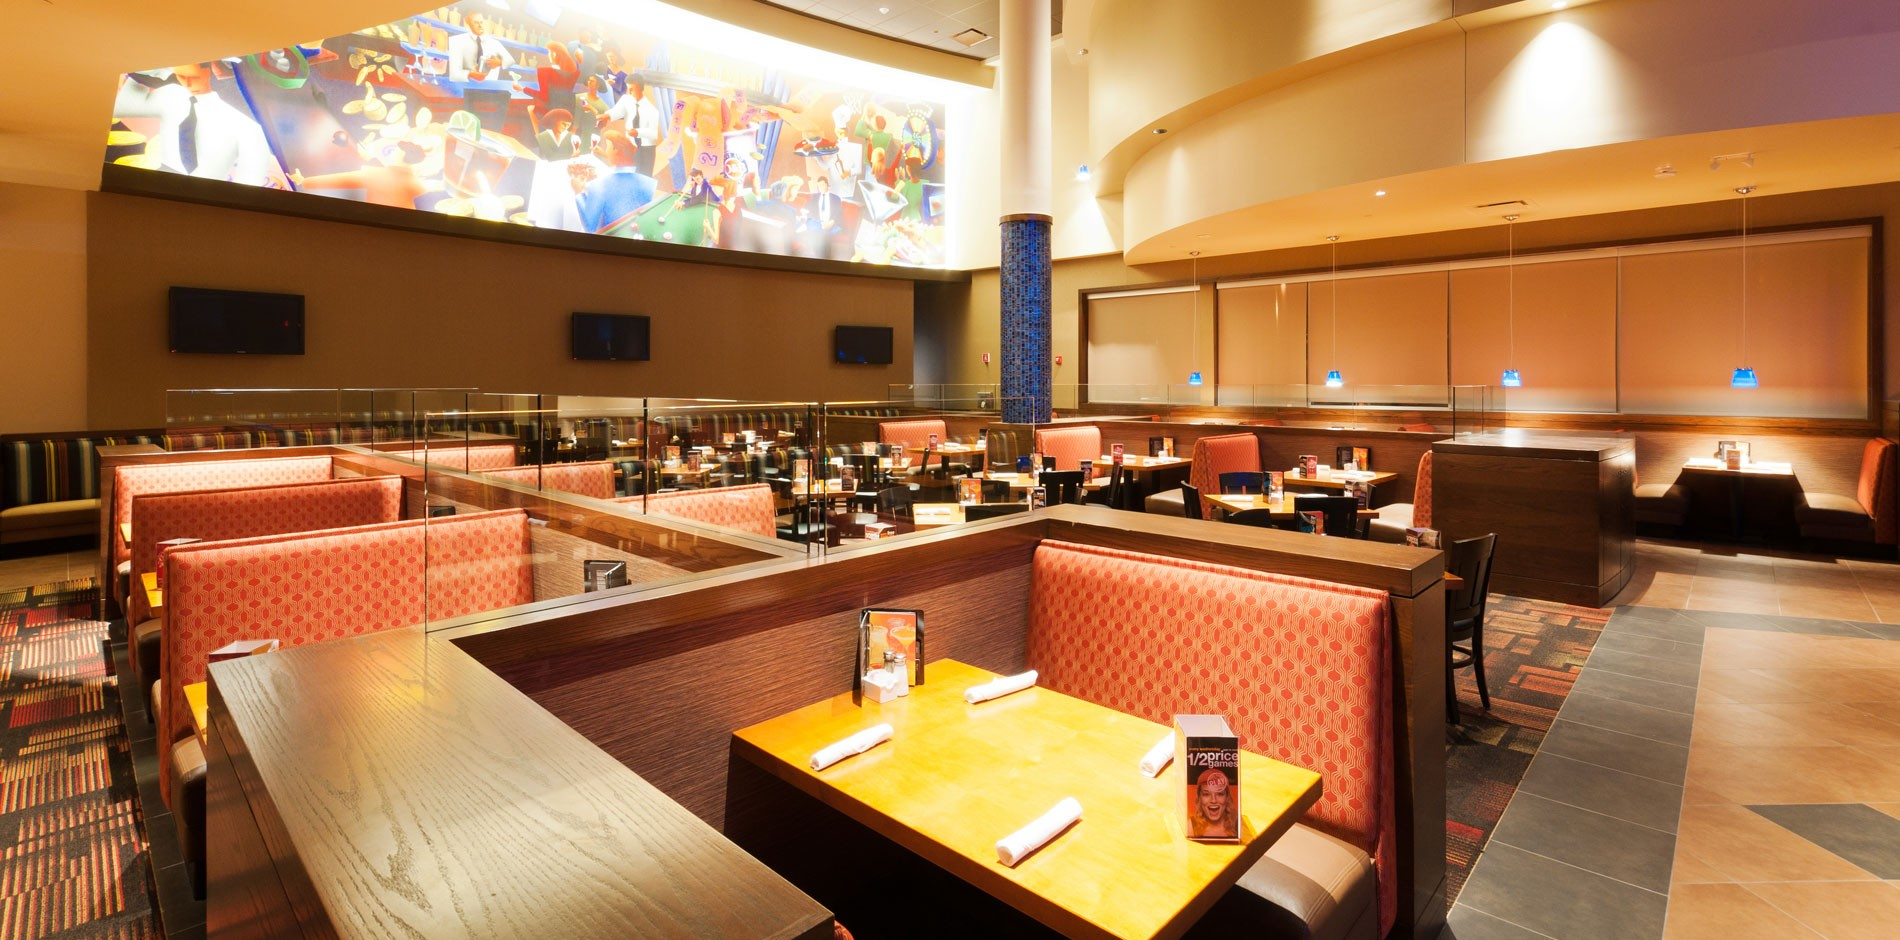 Dave Amp Buster S Renovation Amp Fit Out Construction